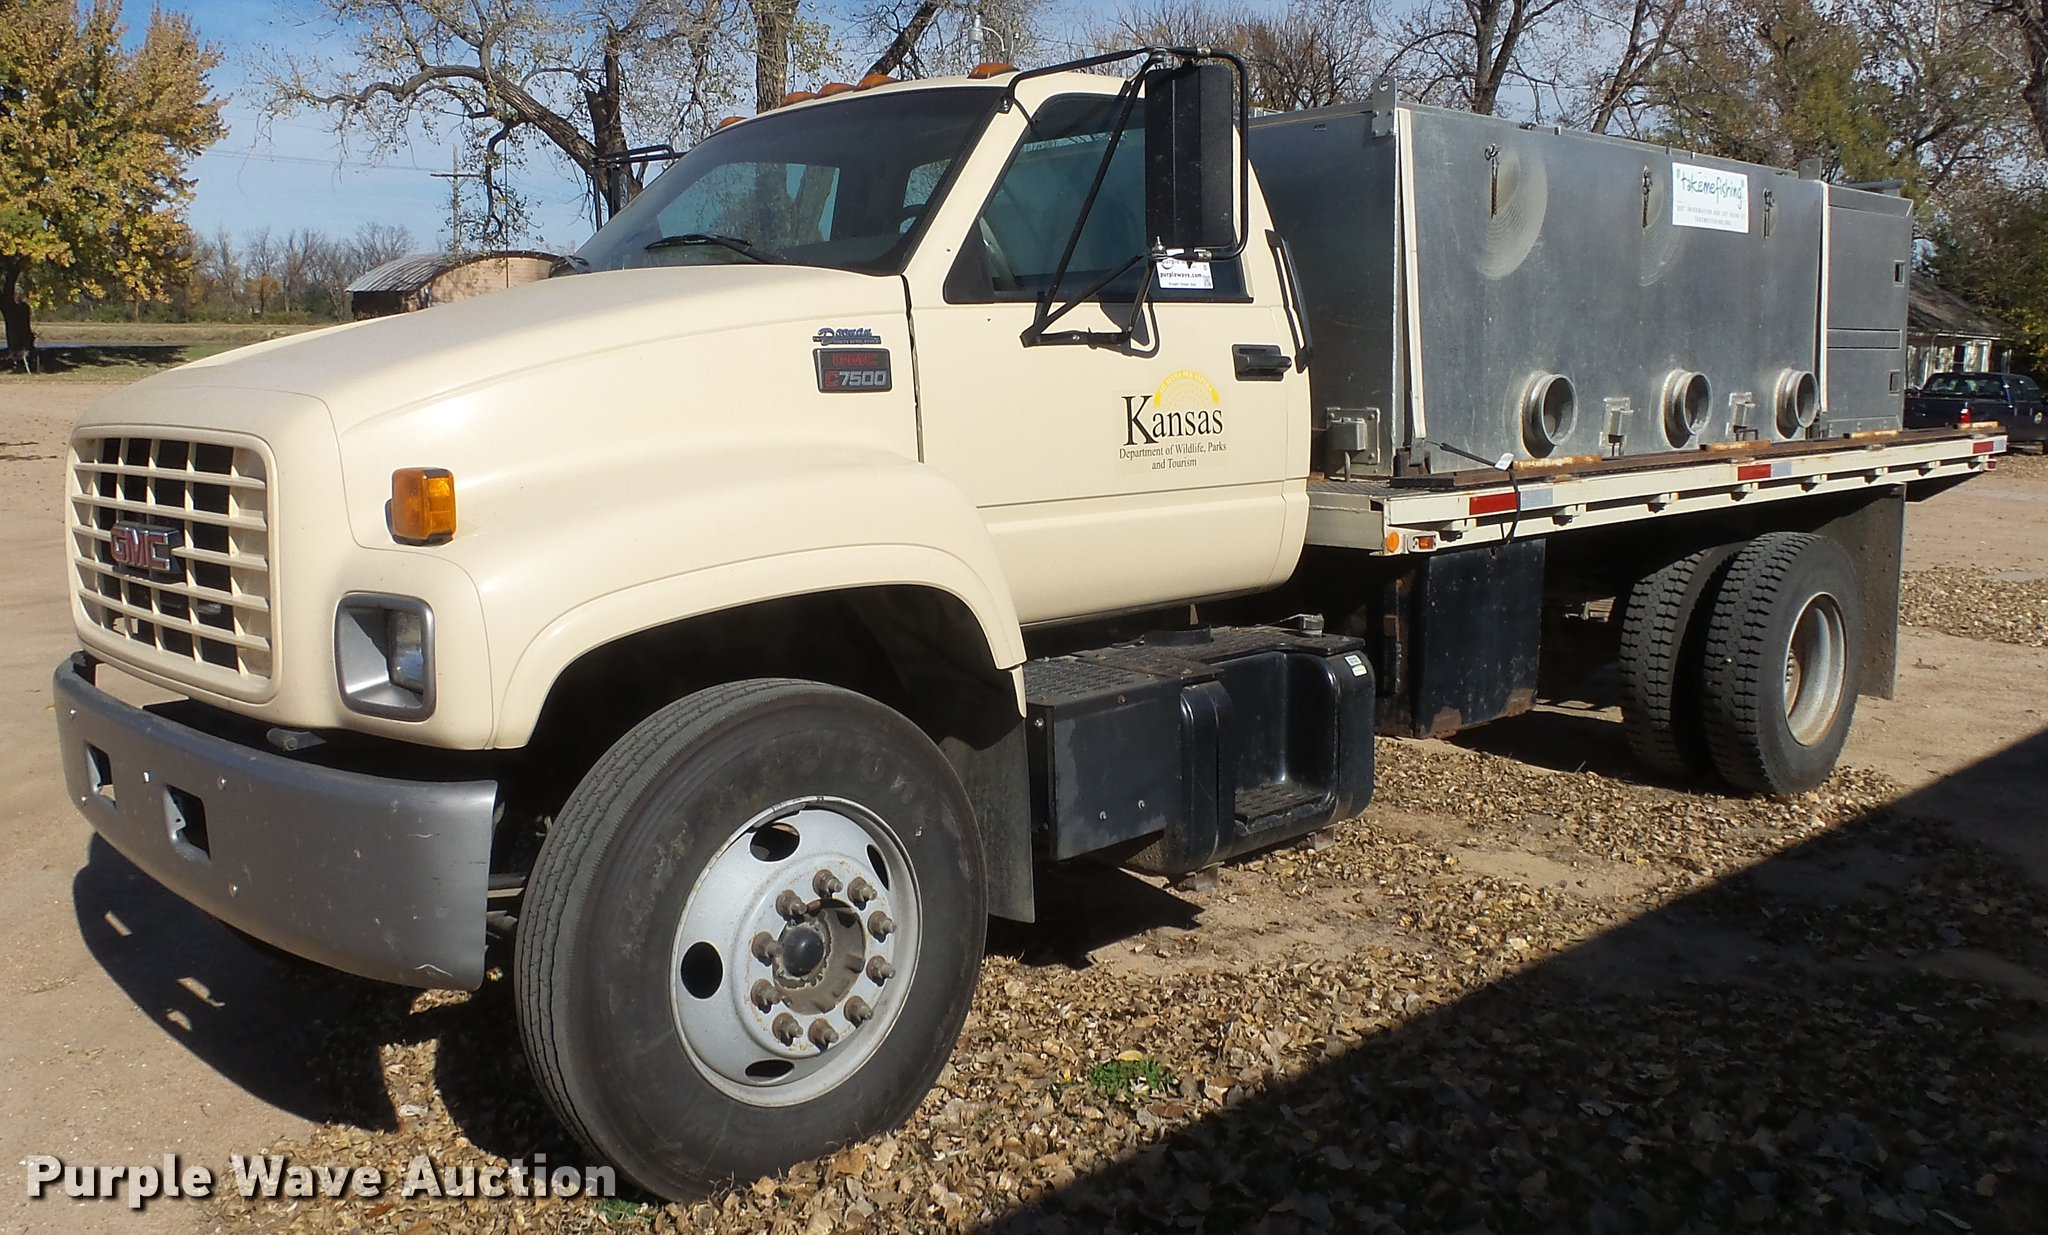 1997 gmc c7500 flatbed truck with fish transporter item de 1998 Chevrolet C7500 Topkick full size in new window